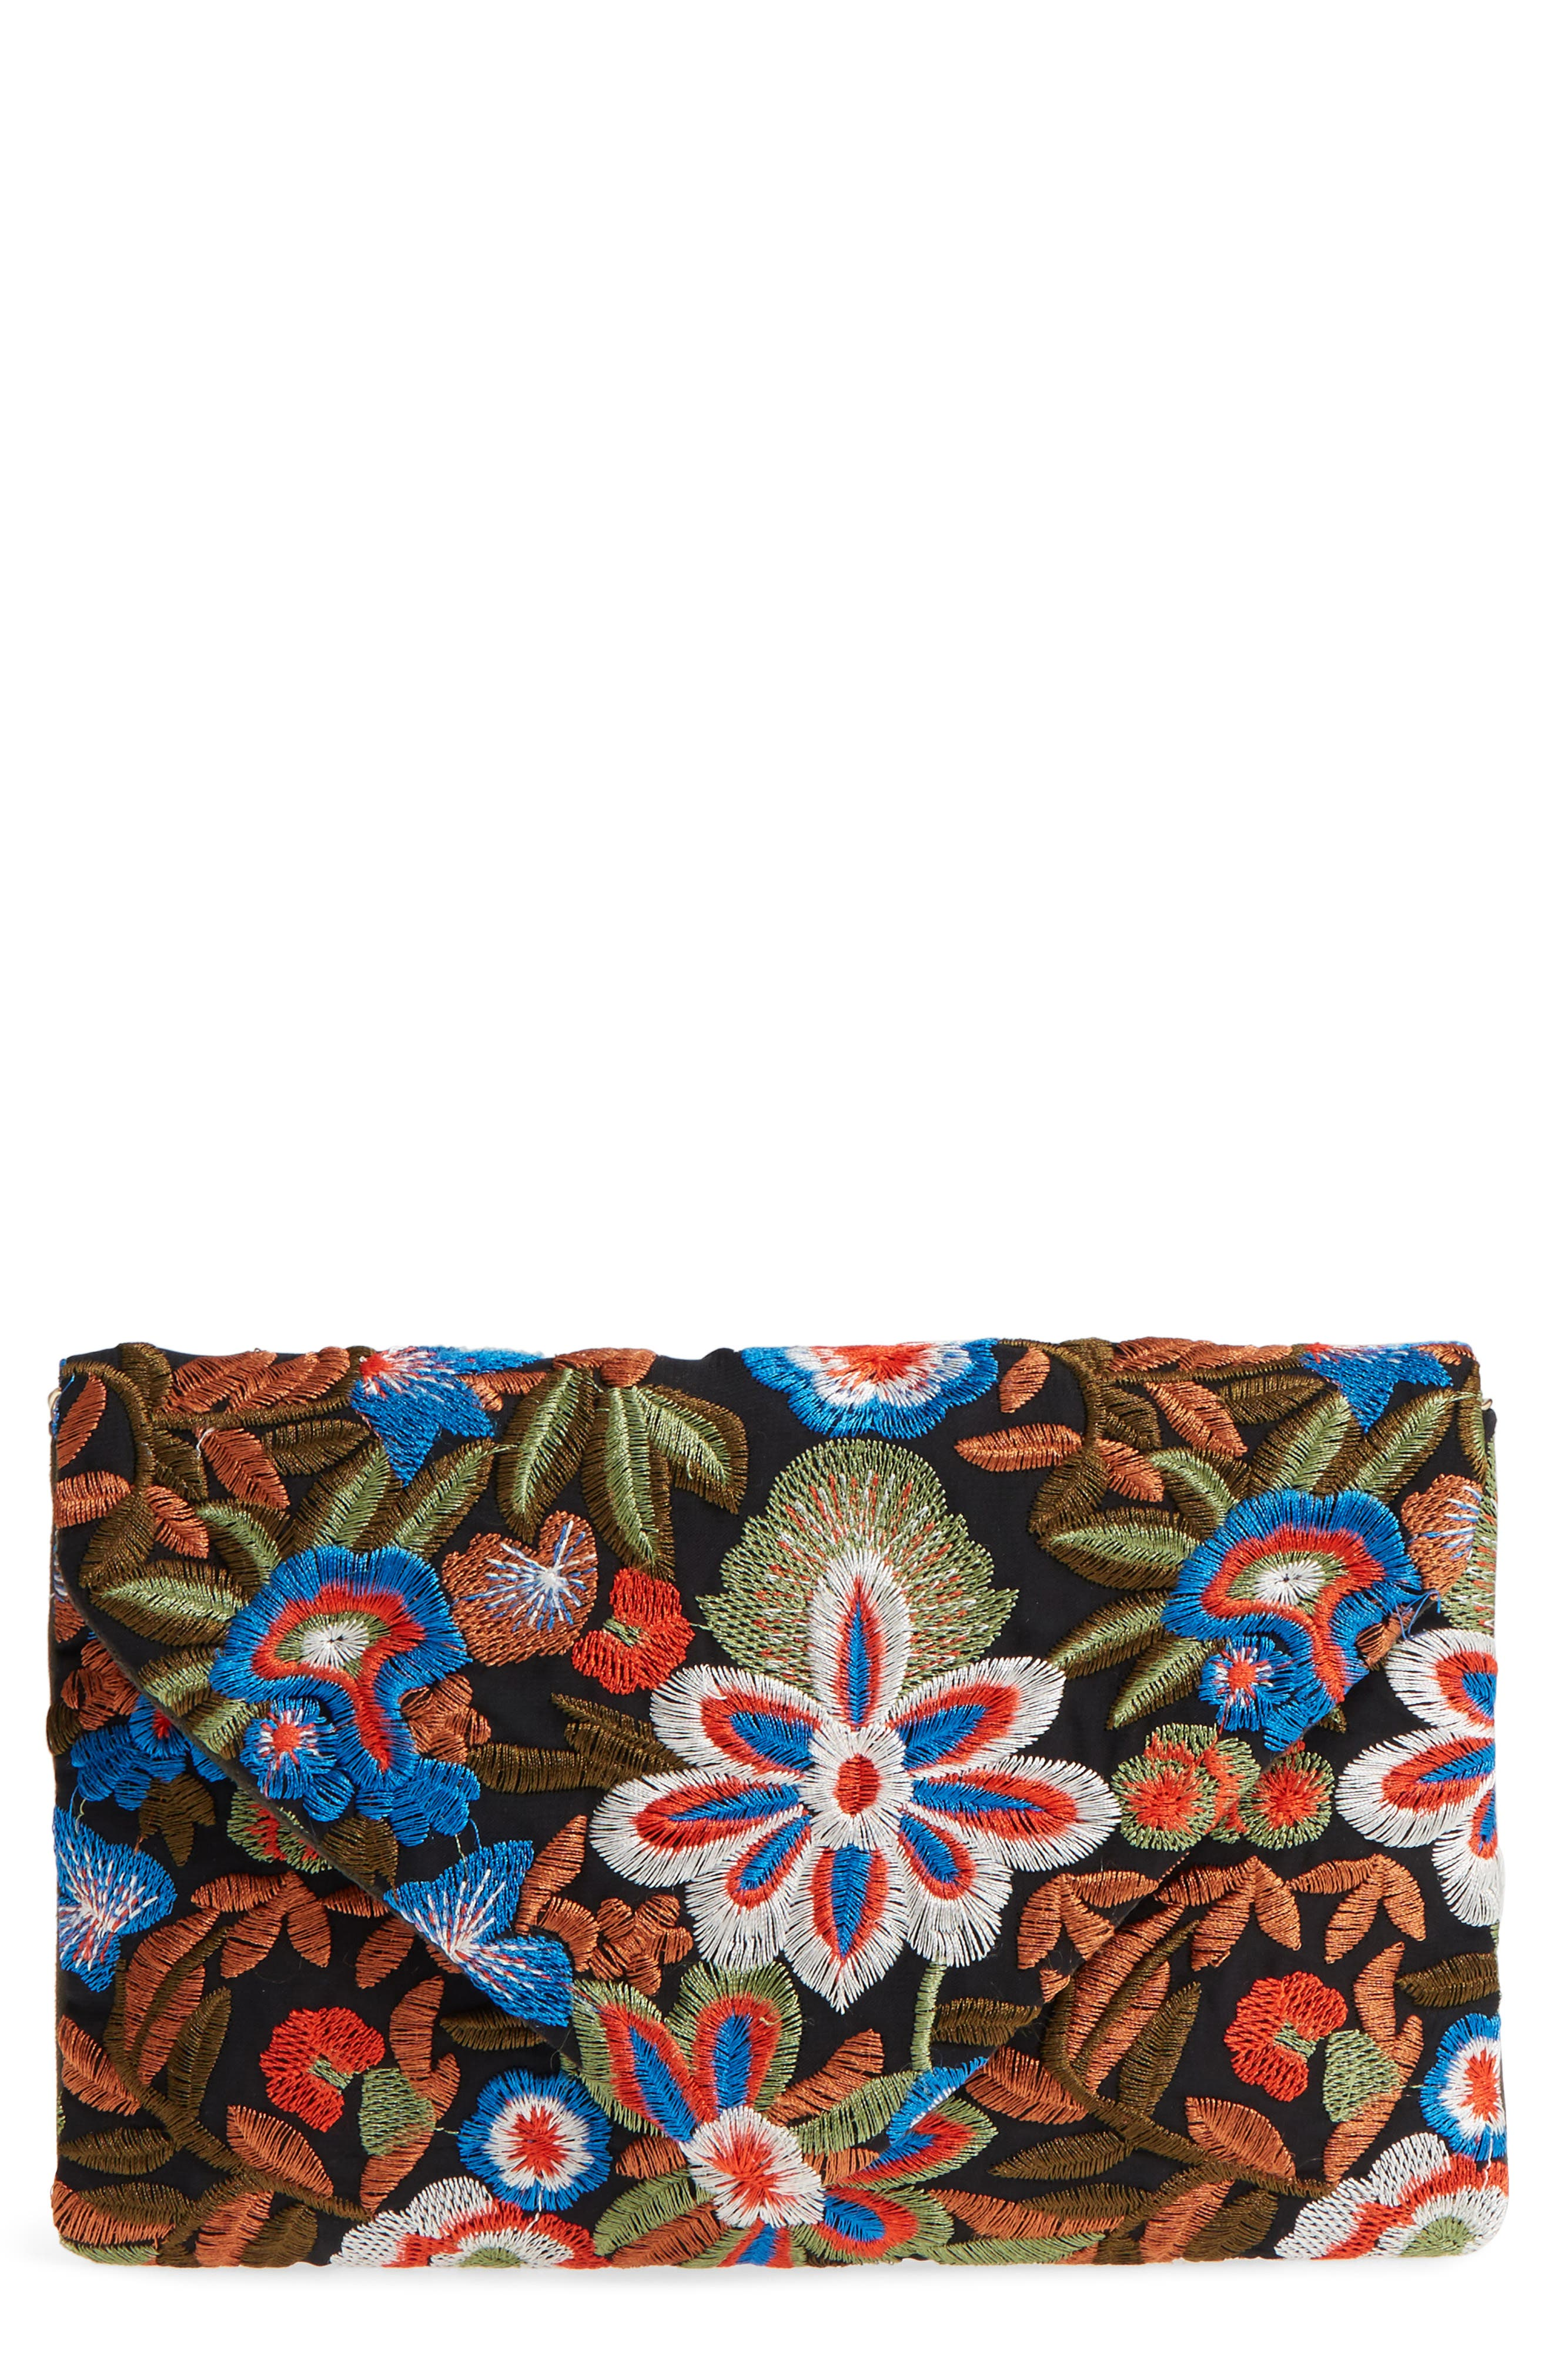 Embroidered Envelope Clutch,                             Main thumbnail 1, color,                             461